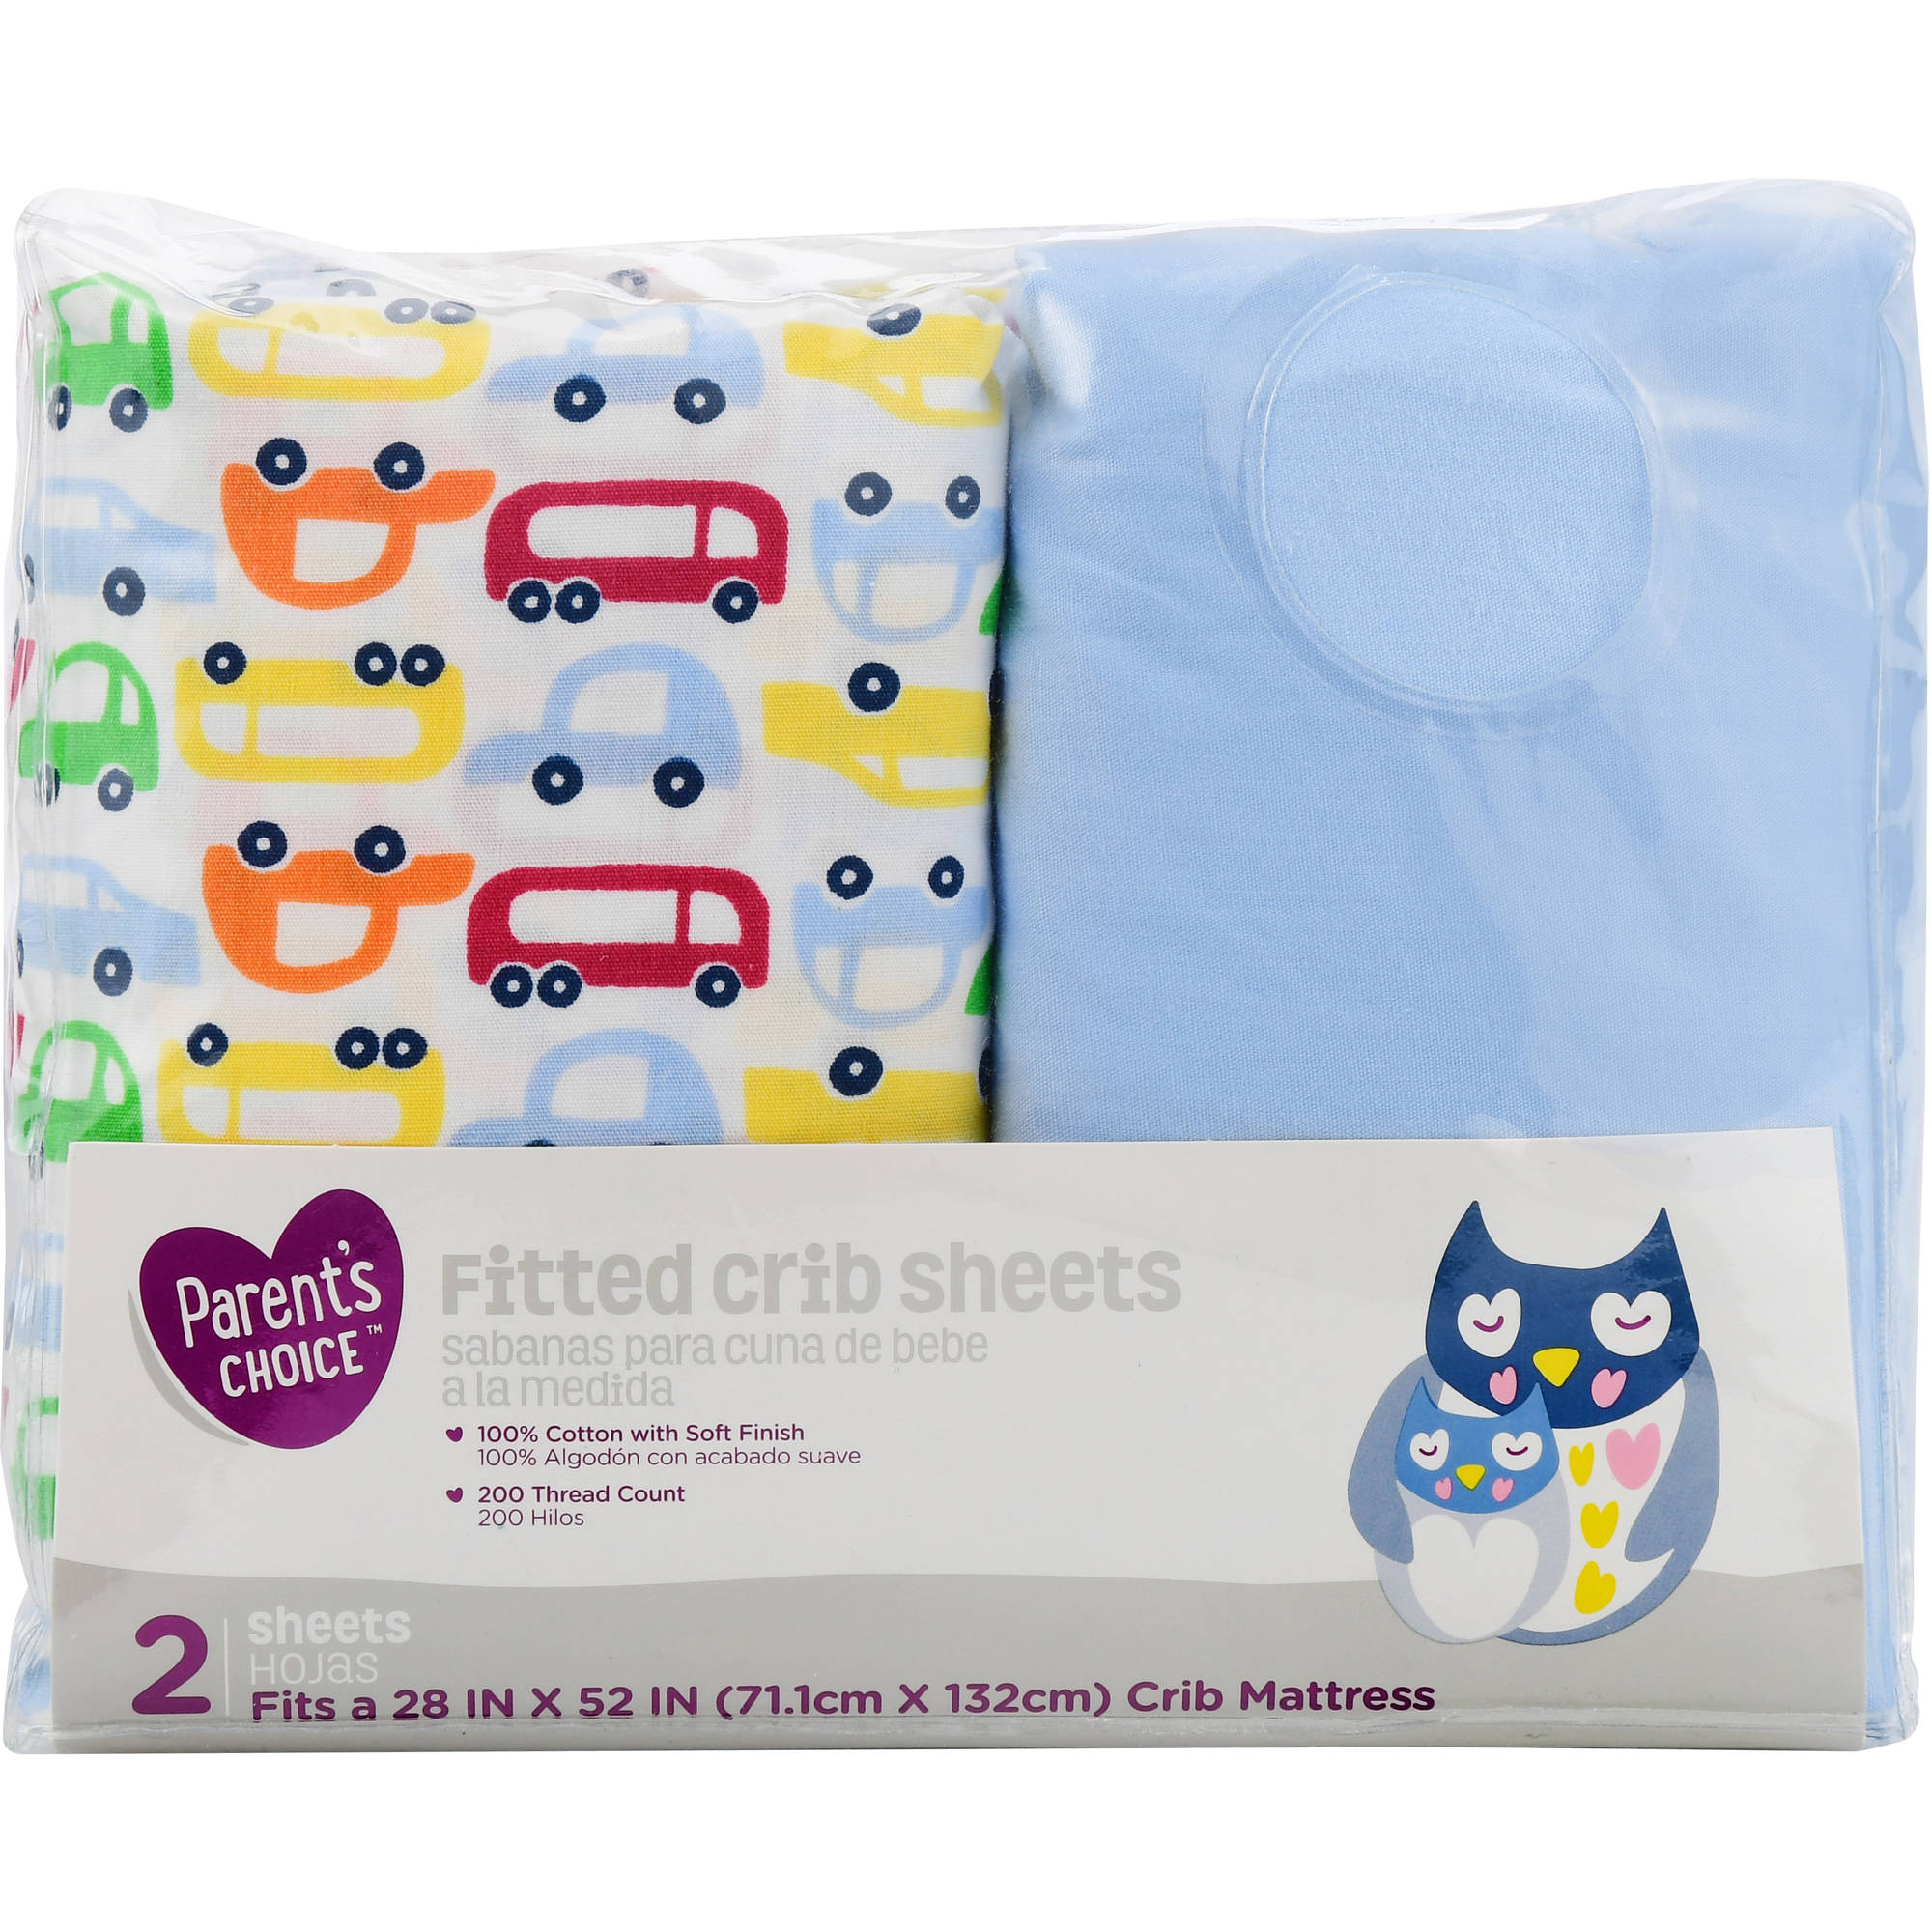 choice fitted crib sheets blue - Crib Sheets